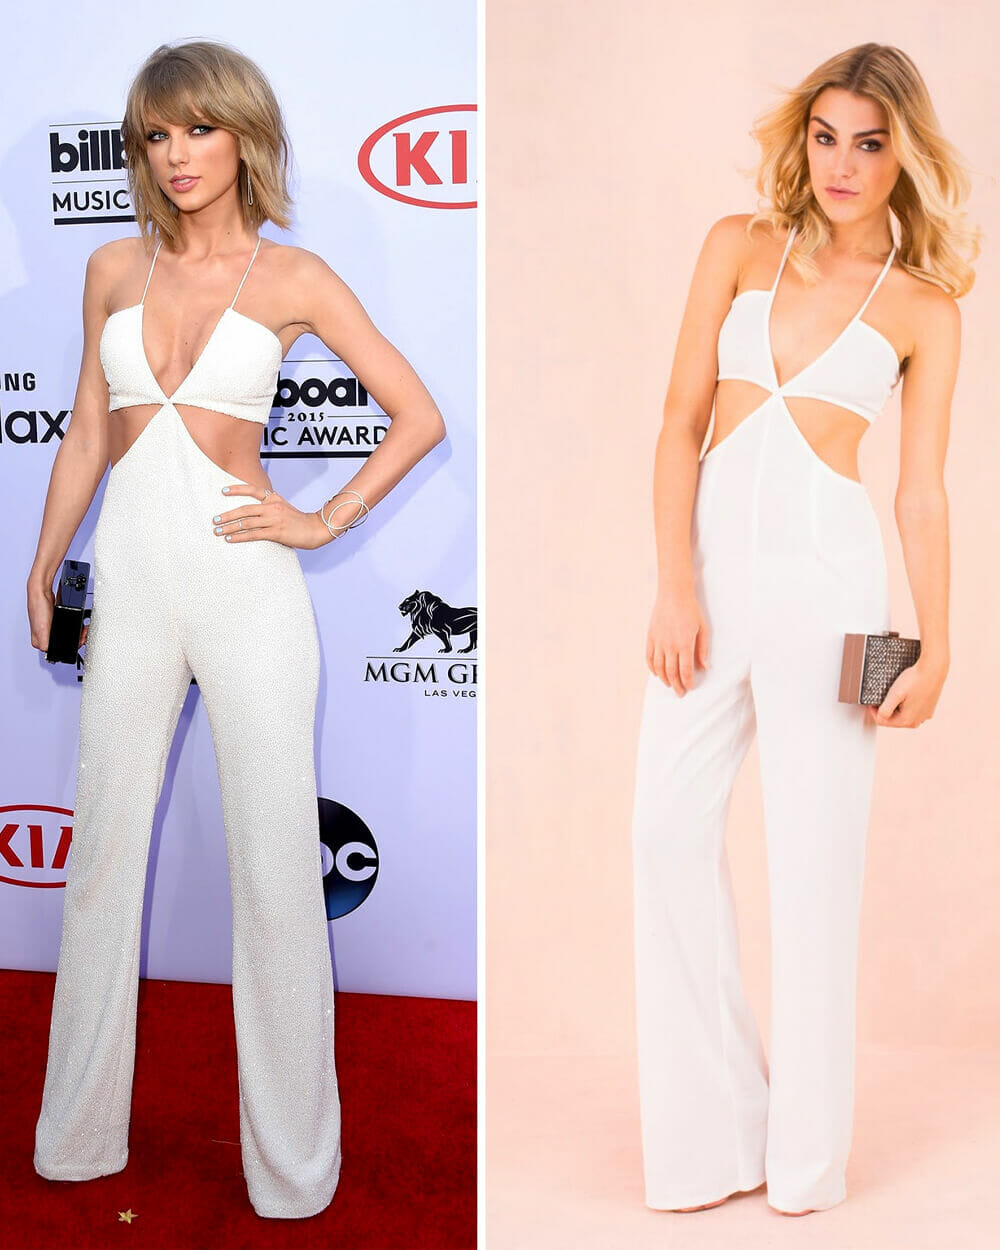 Fast fashion brand Missguided copies Taylor Swift outfits